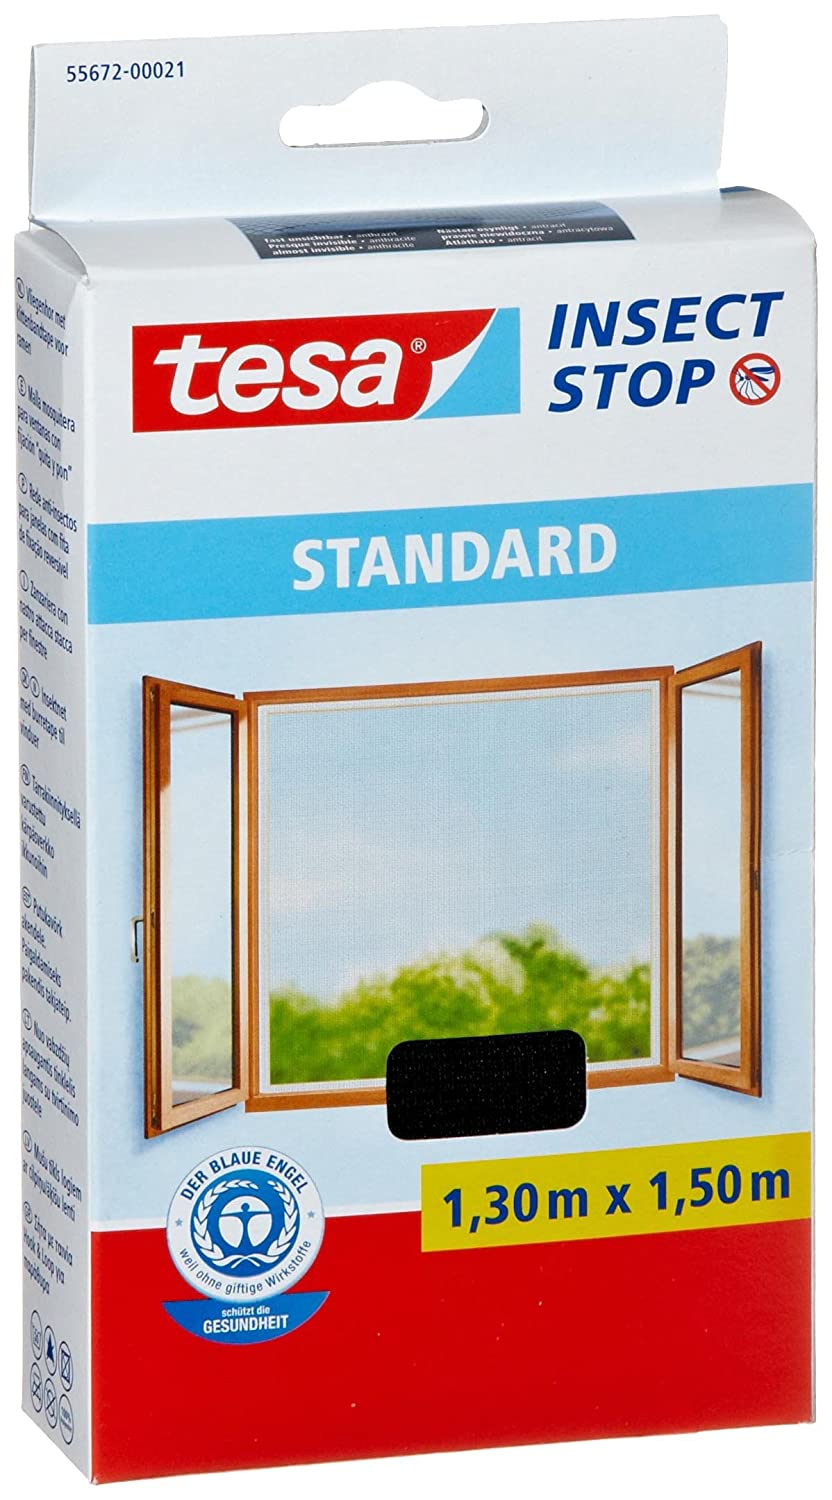 tesa 55672-00021-03 Insect Stop Hook and Loop Standard Easy To Use, Washable Insect Screen For Windows, 1.3 x 1.5 m - Anthracite